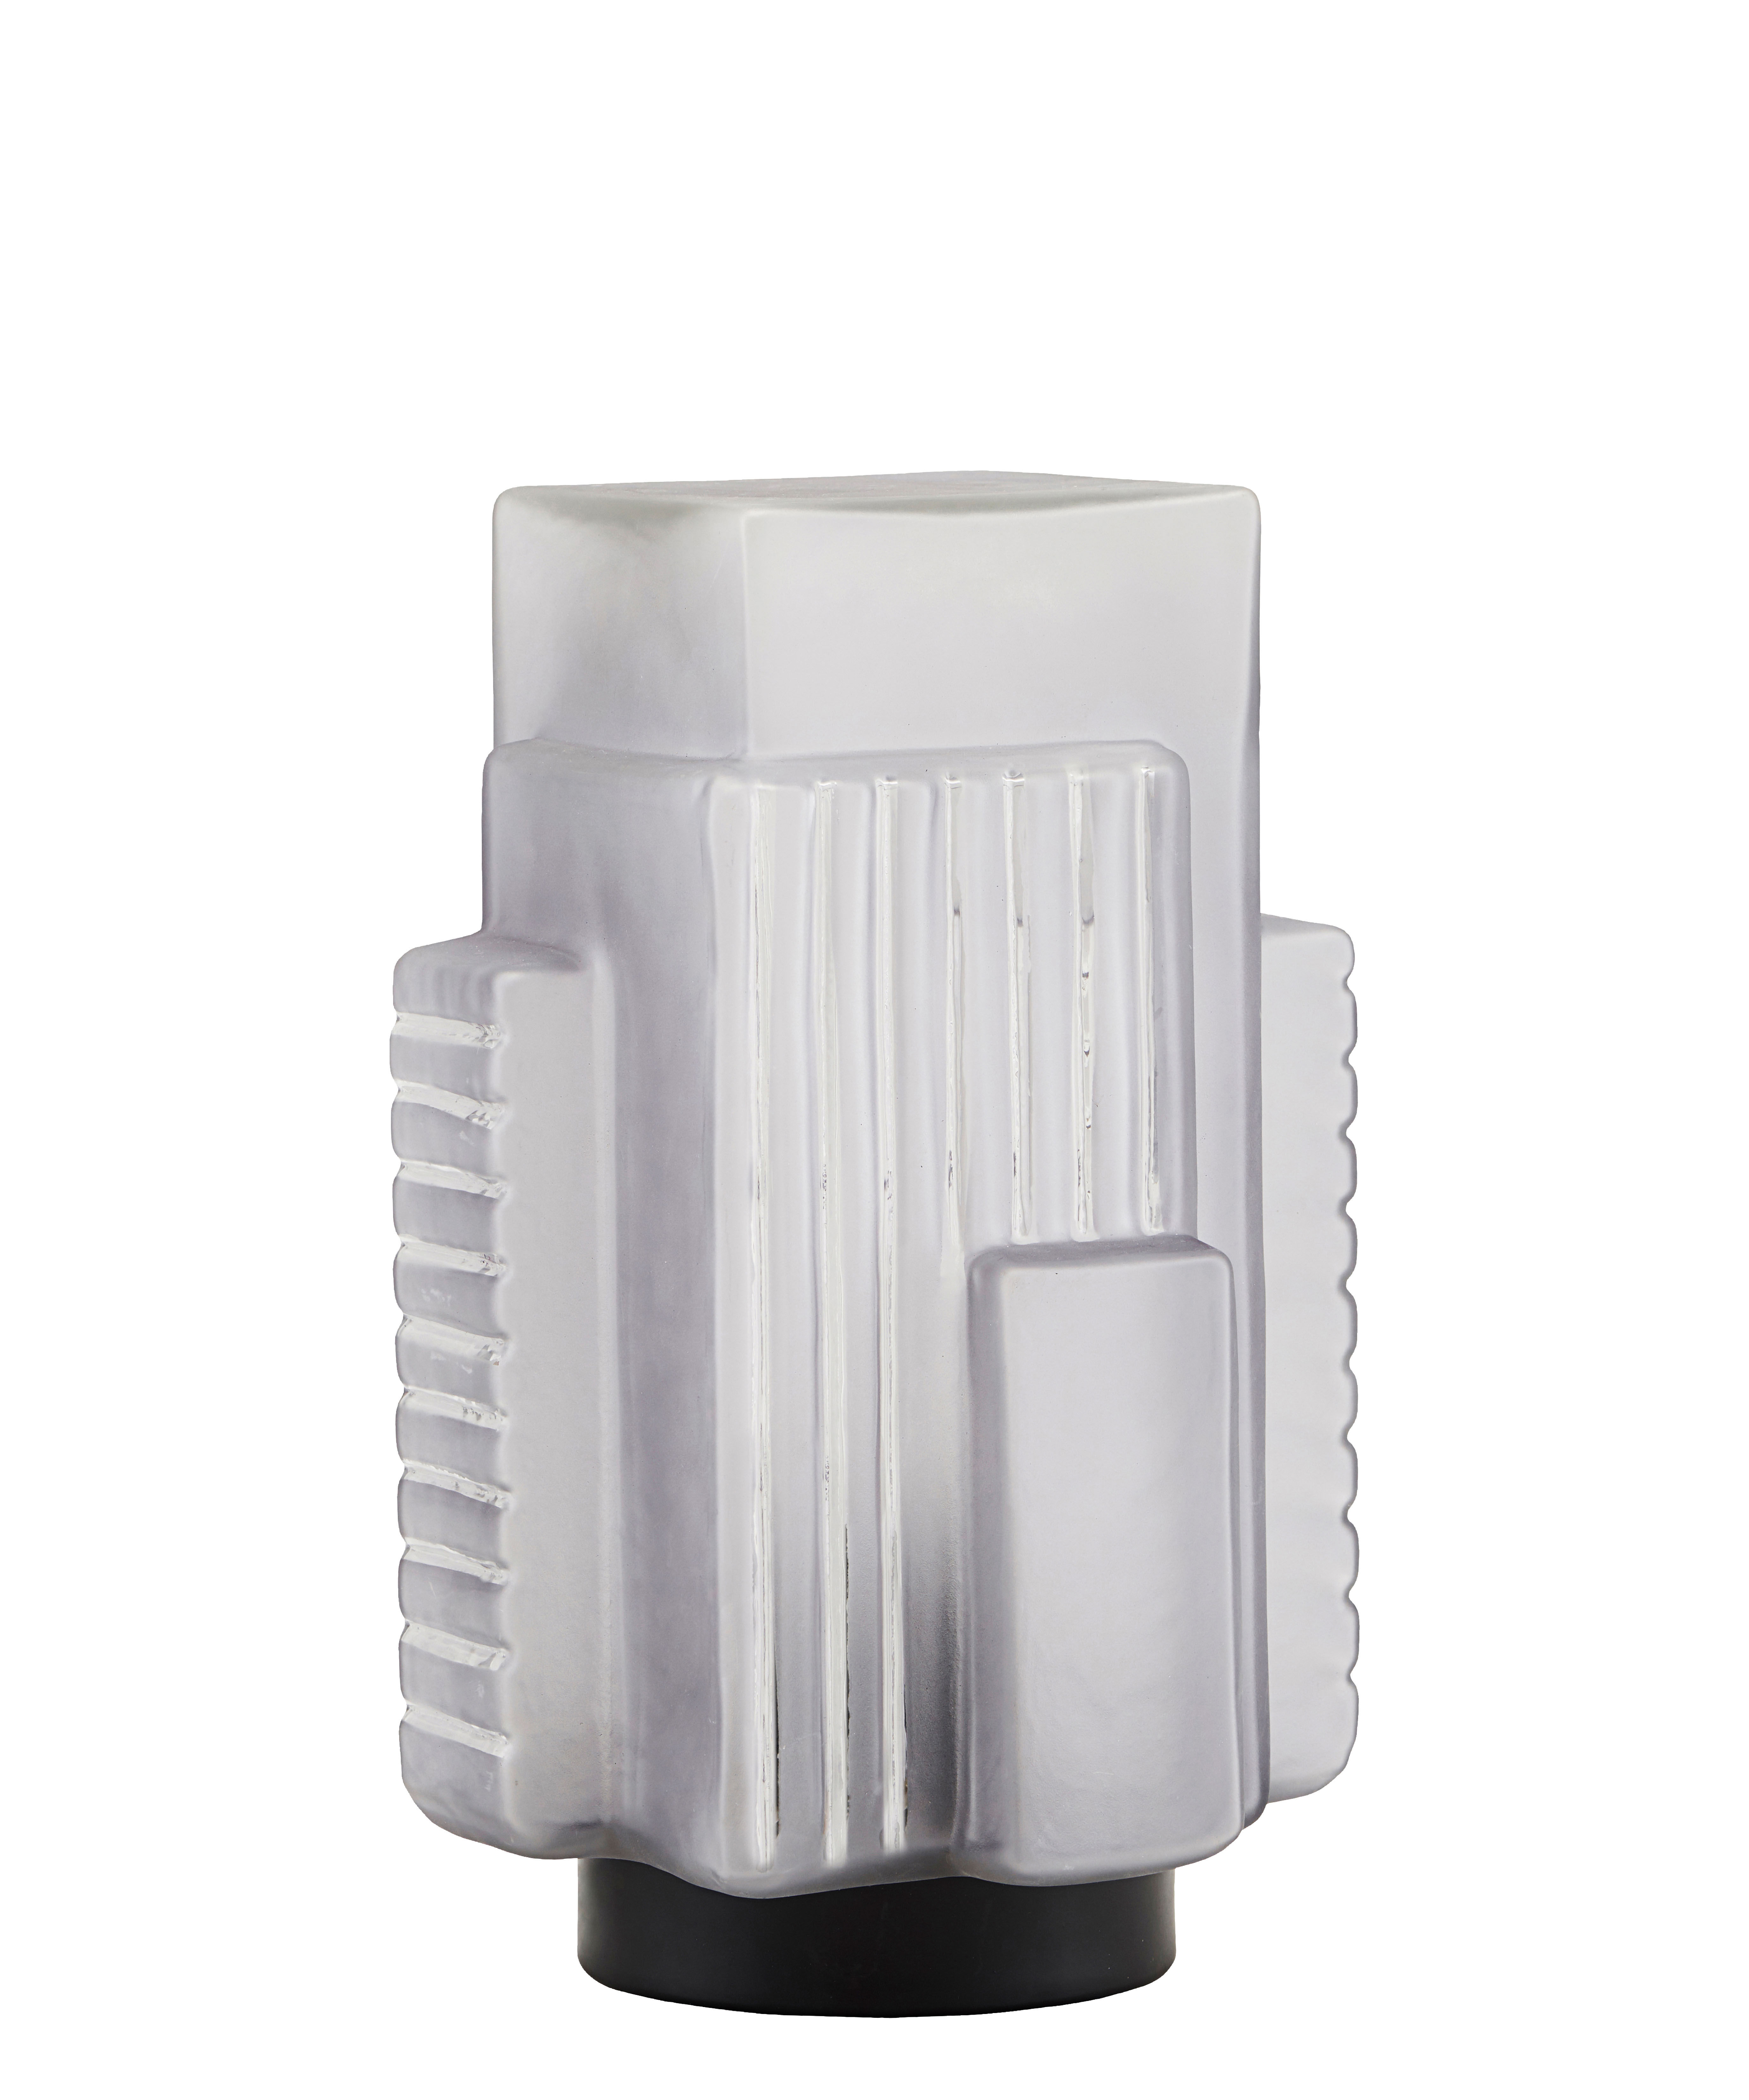 Lighting - Table Lamps - Blocks Table lamp - / H 28 cm by House Doctor - Frosted glass - Glass, Metal